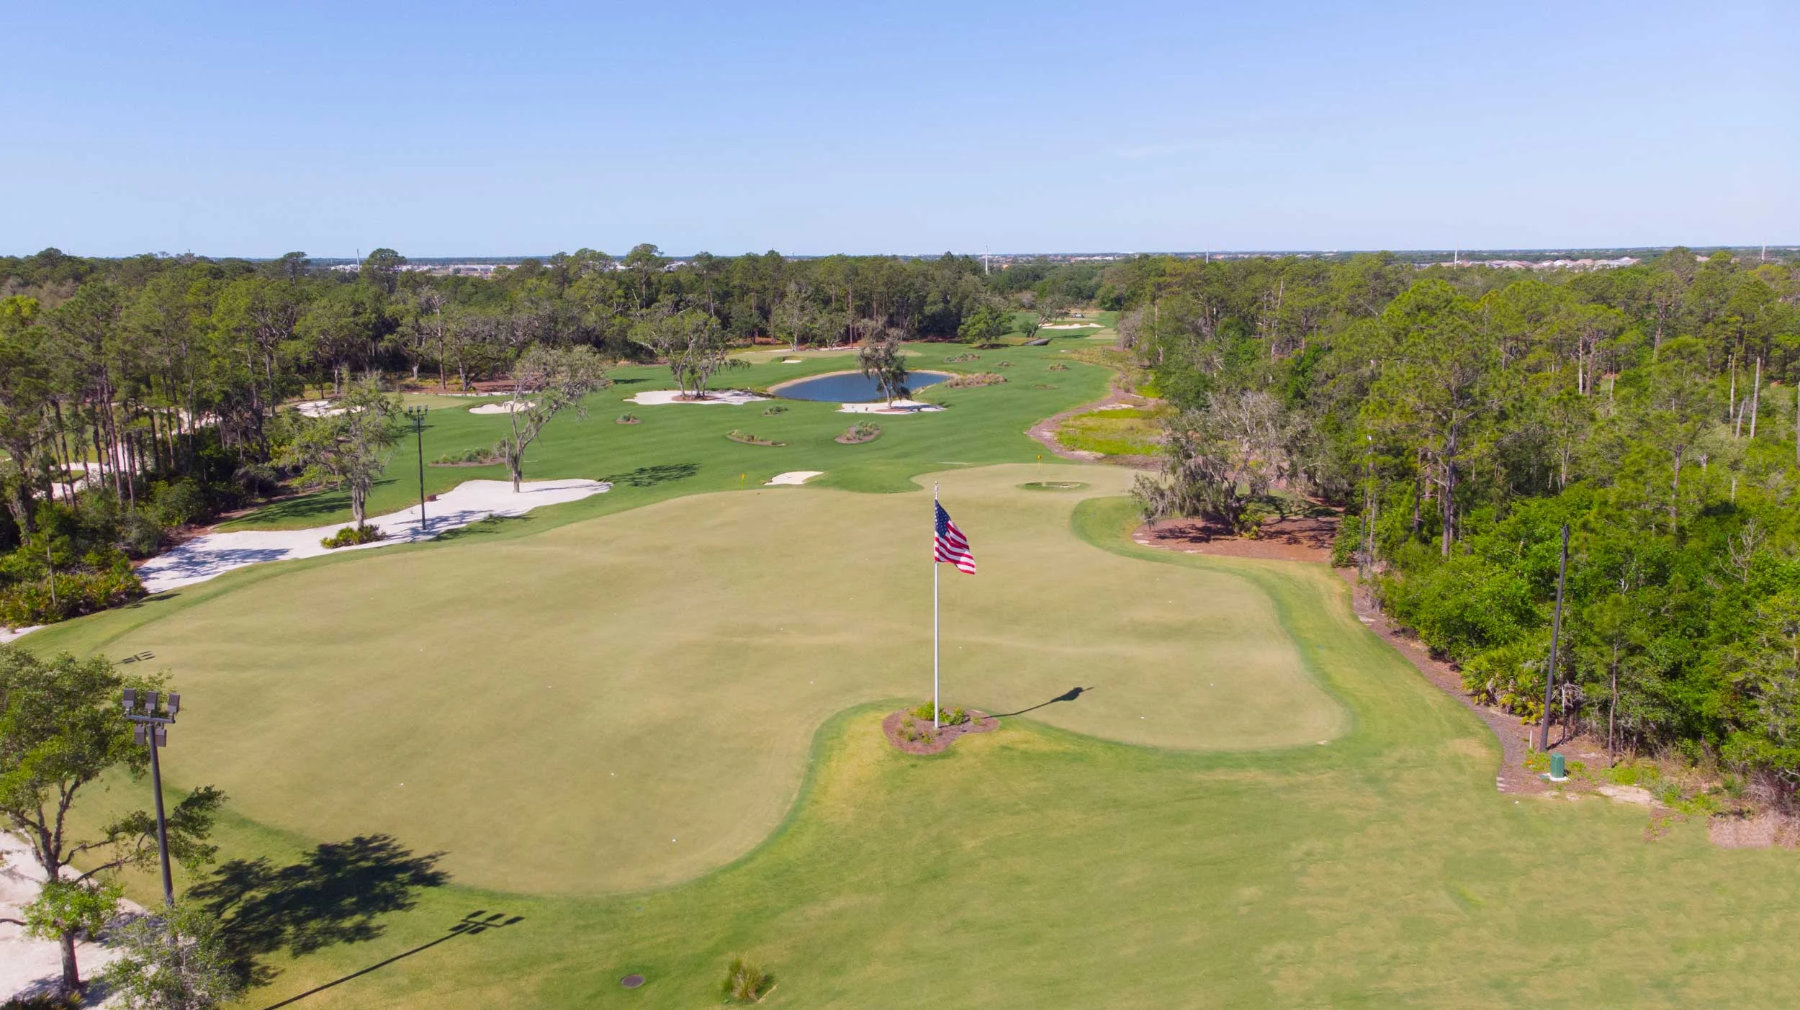 The one-acre putting course at Concession with the par-3 course beyond it.